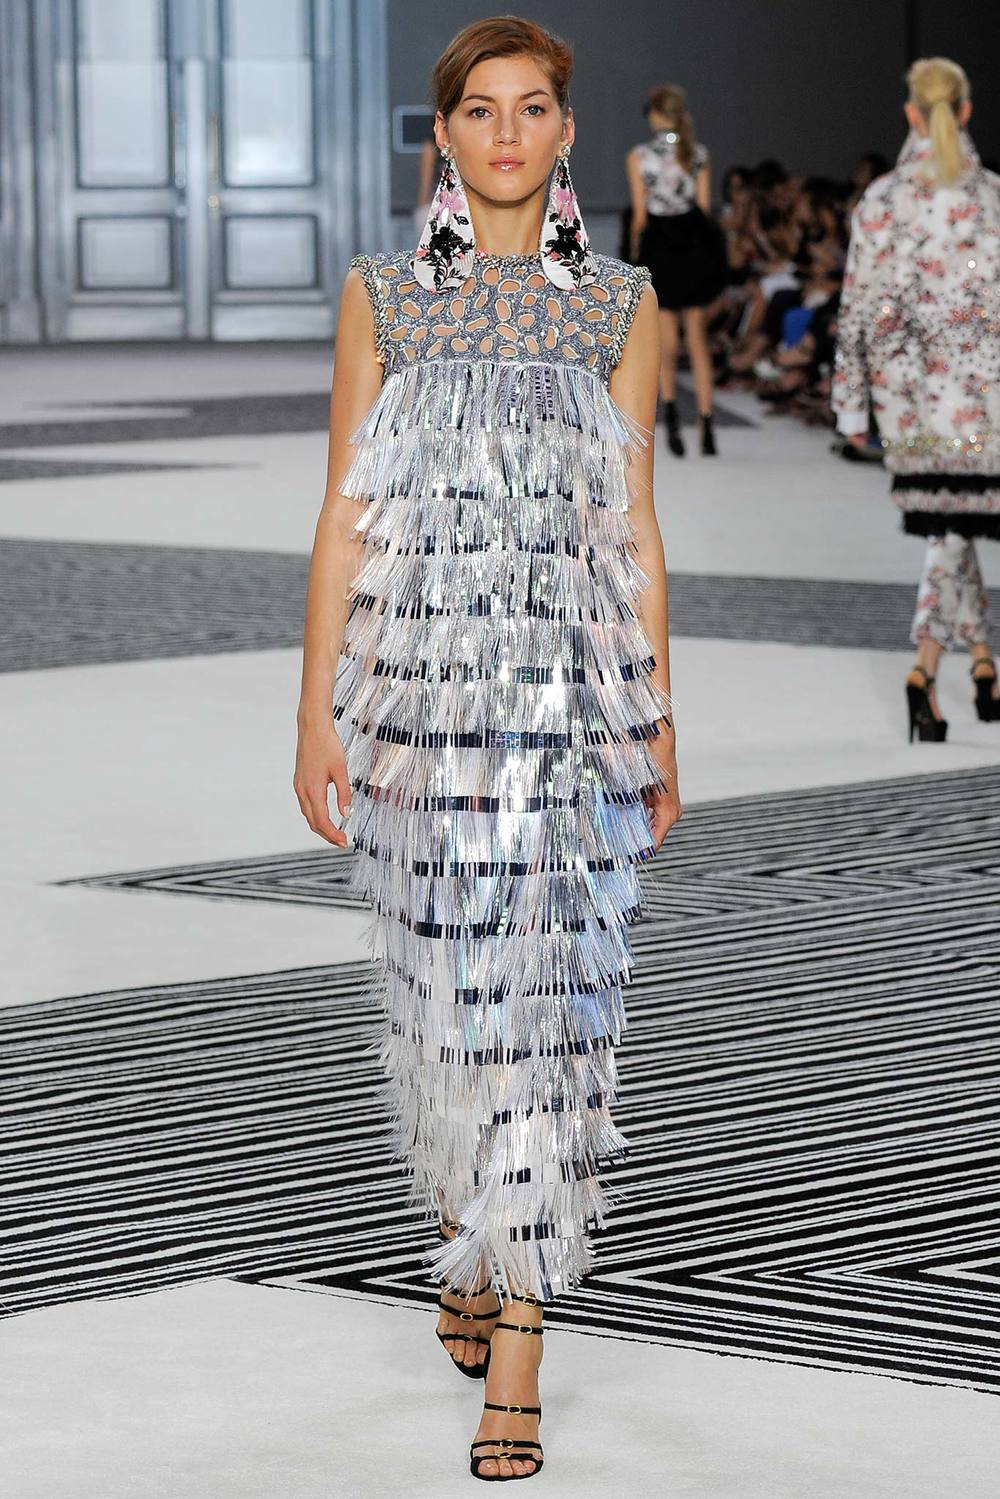 Giambattista Valli  created massive fabric earrings adorned with beads. AND THAT FRINGE DRESS YES.